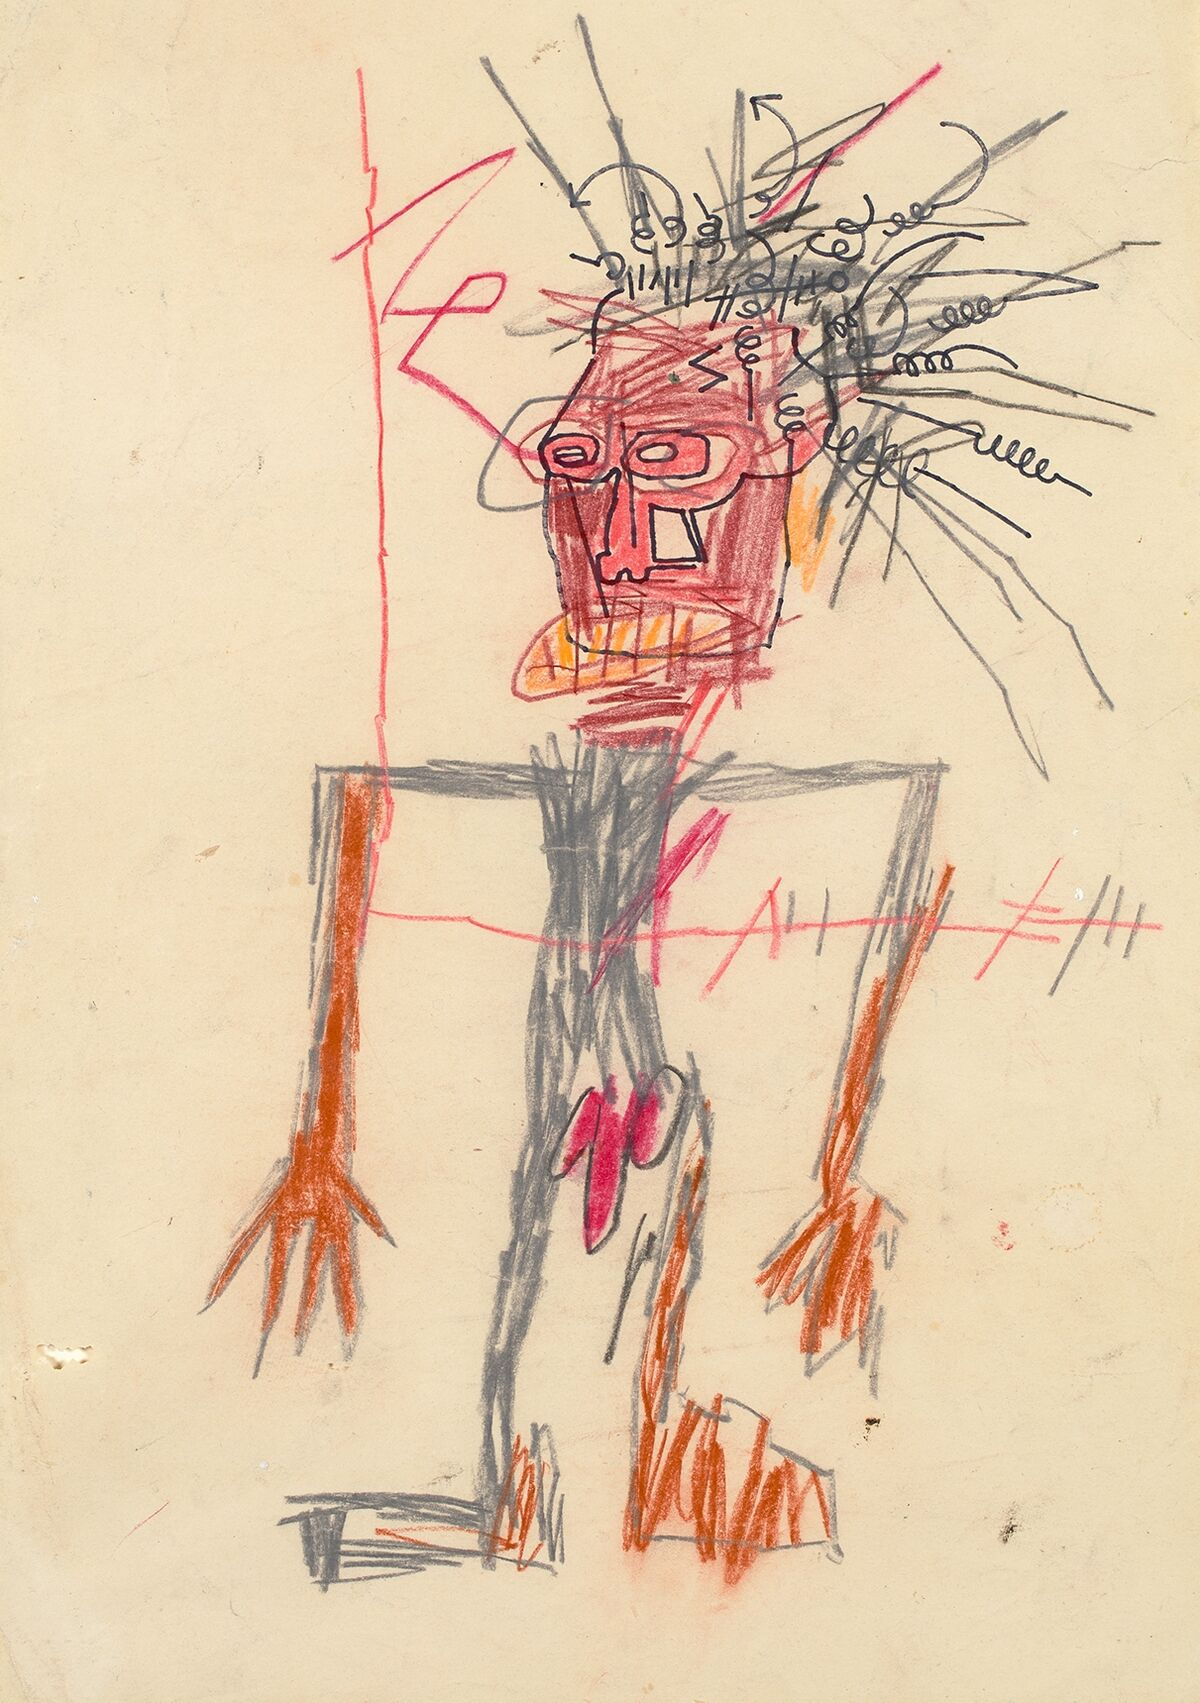 Jean-Michel Basquiat, Untitled (Standing Male Figure), 1982. Courtesy of Phillips.